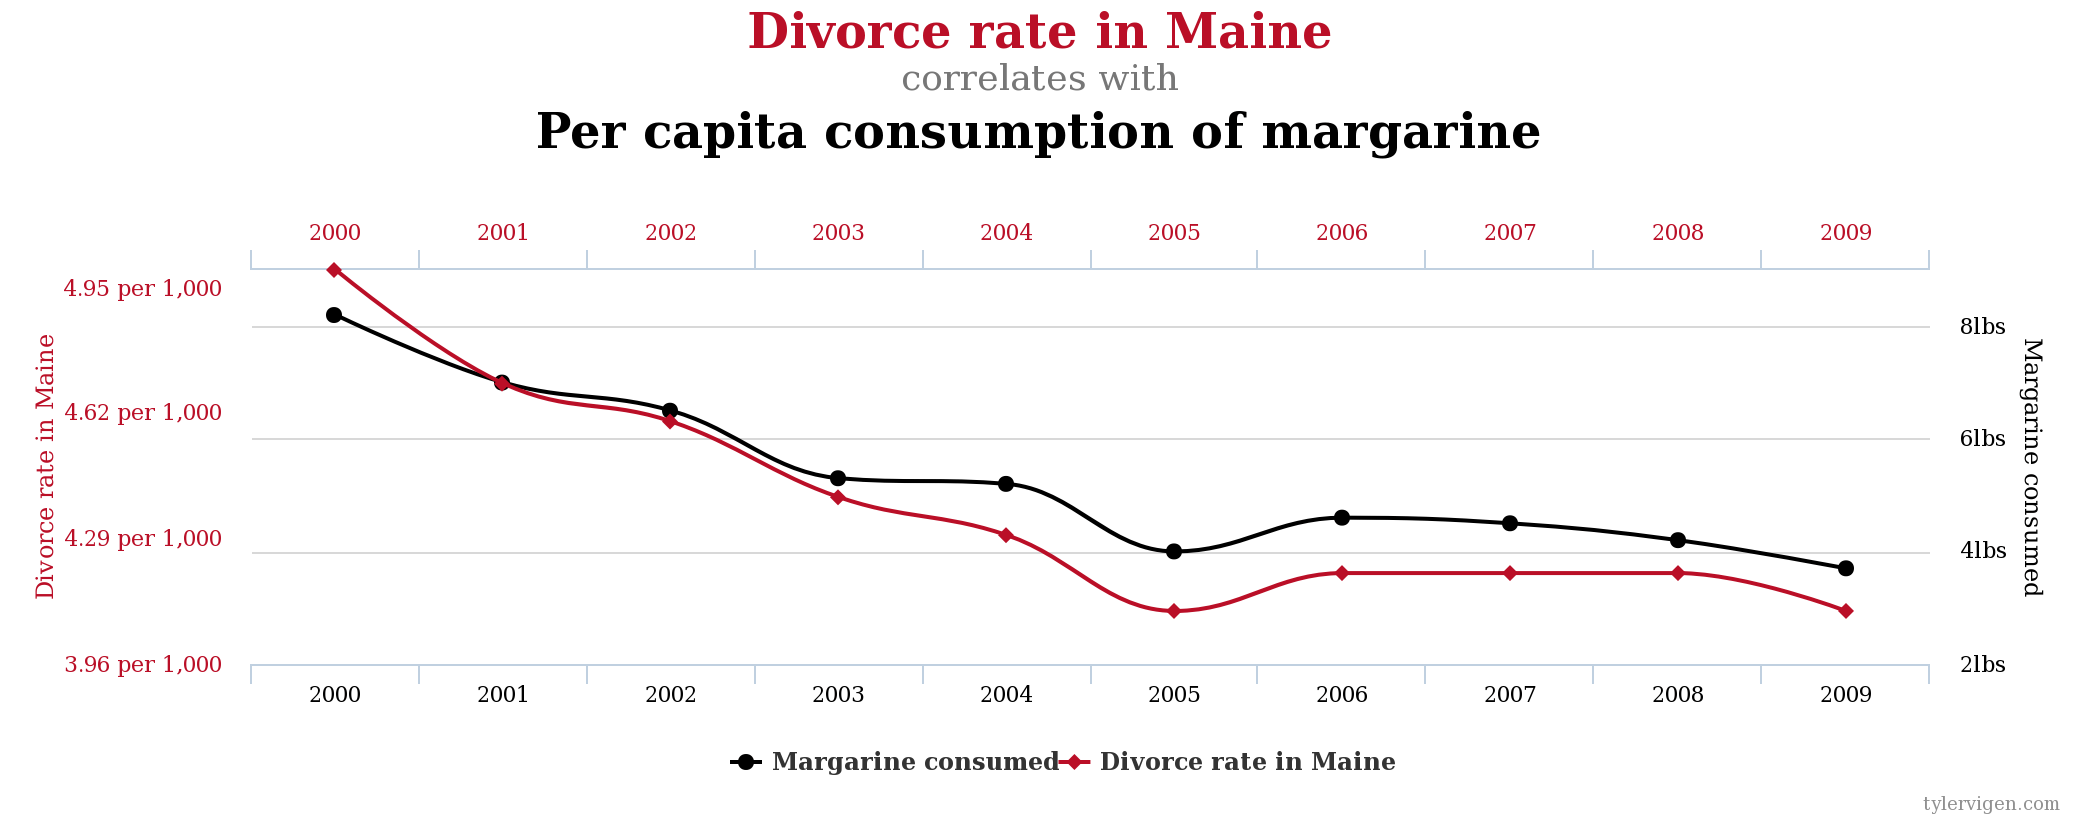 chart plotting divorce rate in Maine with per capita consumption of margarine